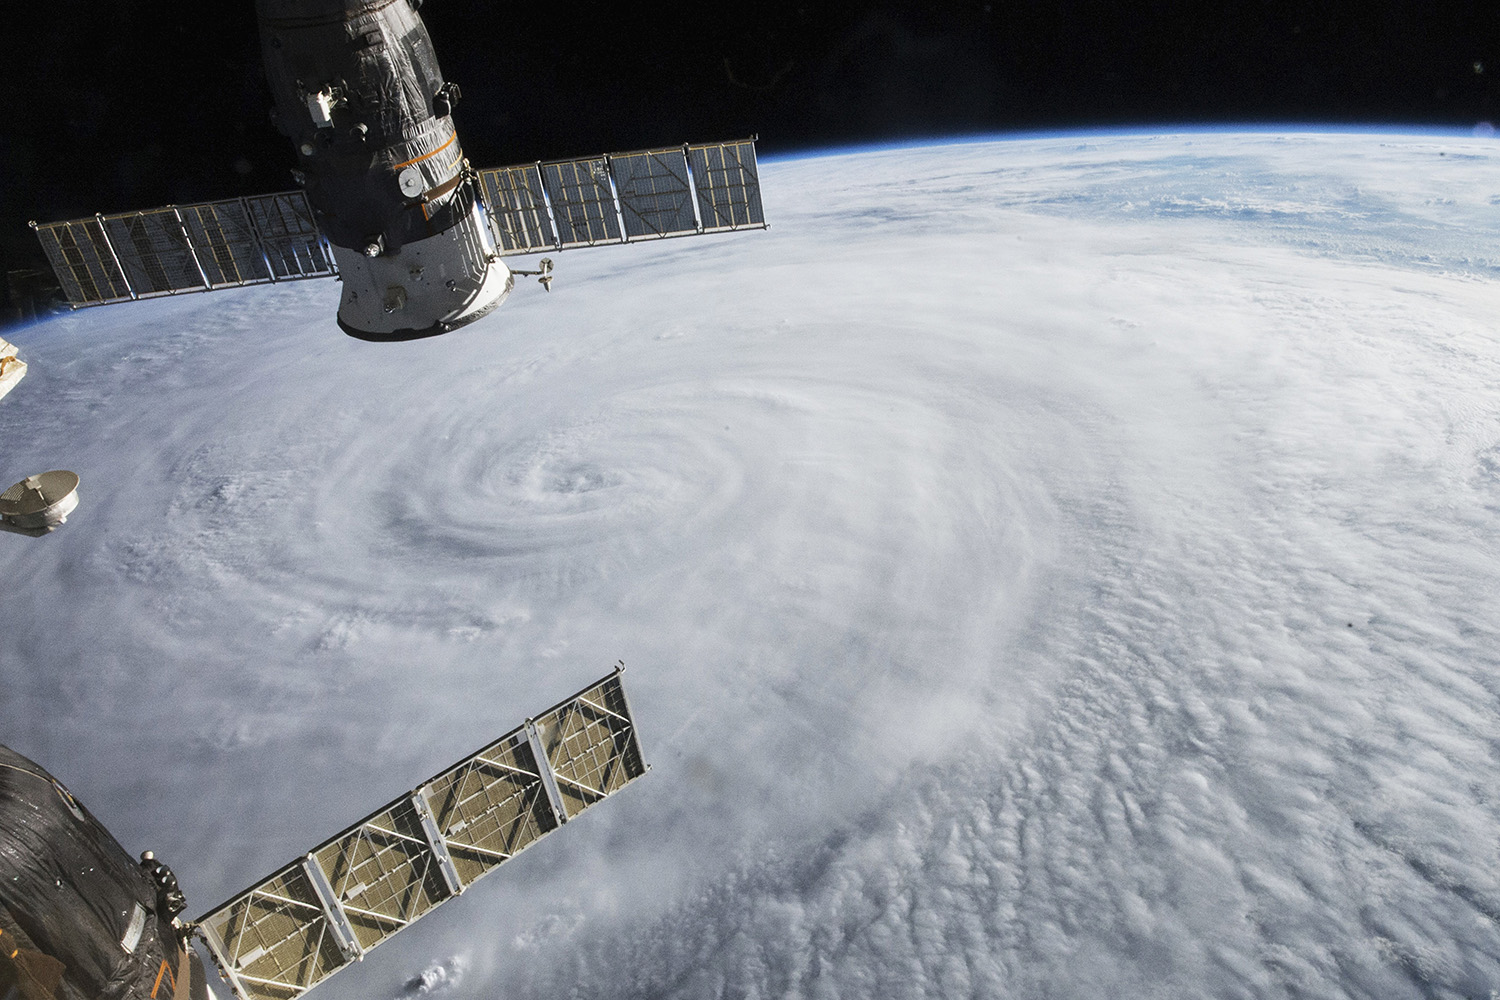 05 Aug 2015 --- This photograph was from the International Space Station (ISS) taken at 08:44 UTC (4:44 p.m. local time) on August 5, 2015, as Typhoon Soudelor advanced on Taiwan. --- Image by © Corbis